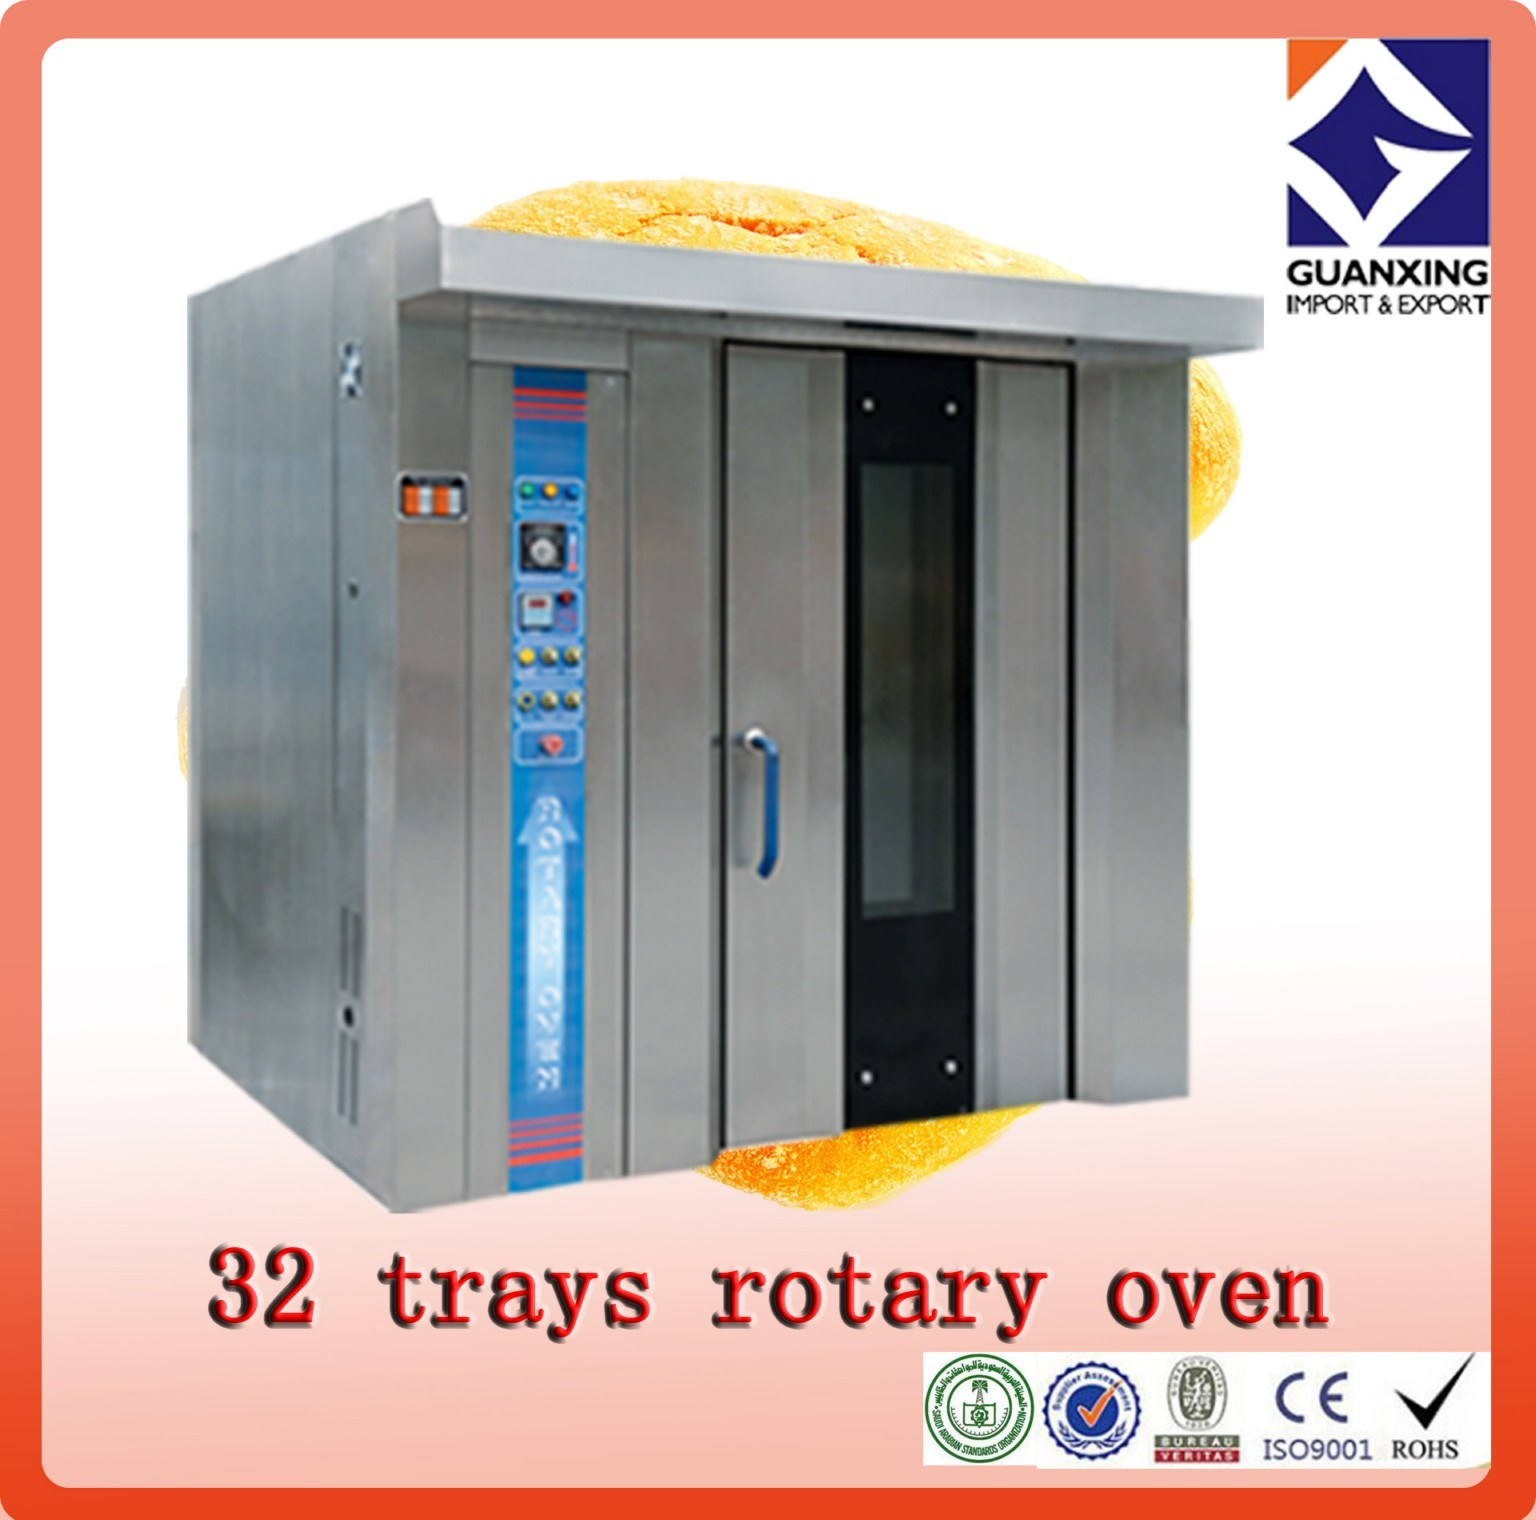 Gas Bread Oven/Baking Oven /Compartment Gas Deck Oven for Bread Baking/Hot Air Circulation Oven